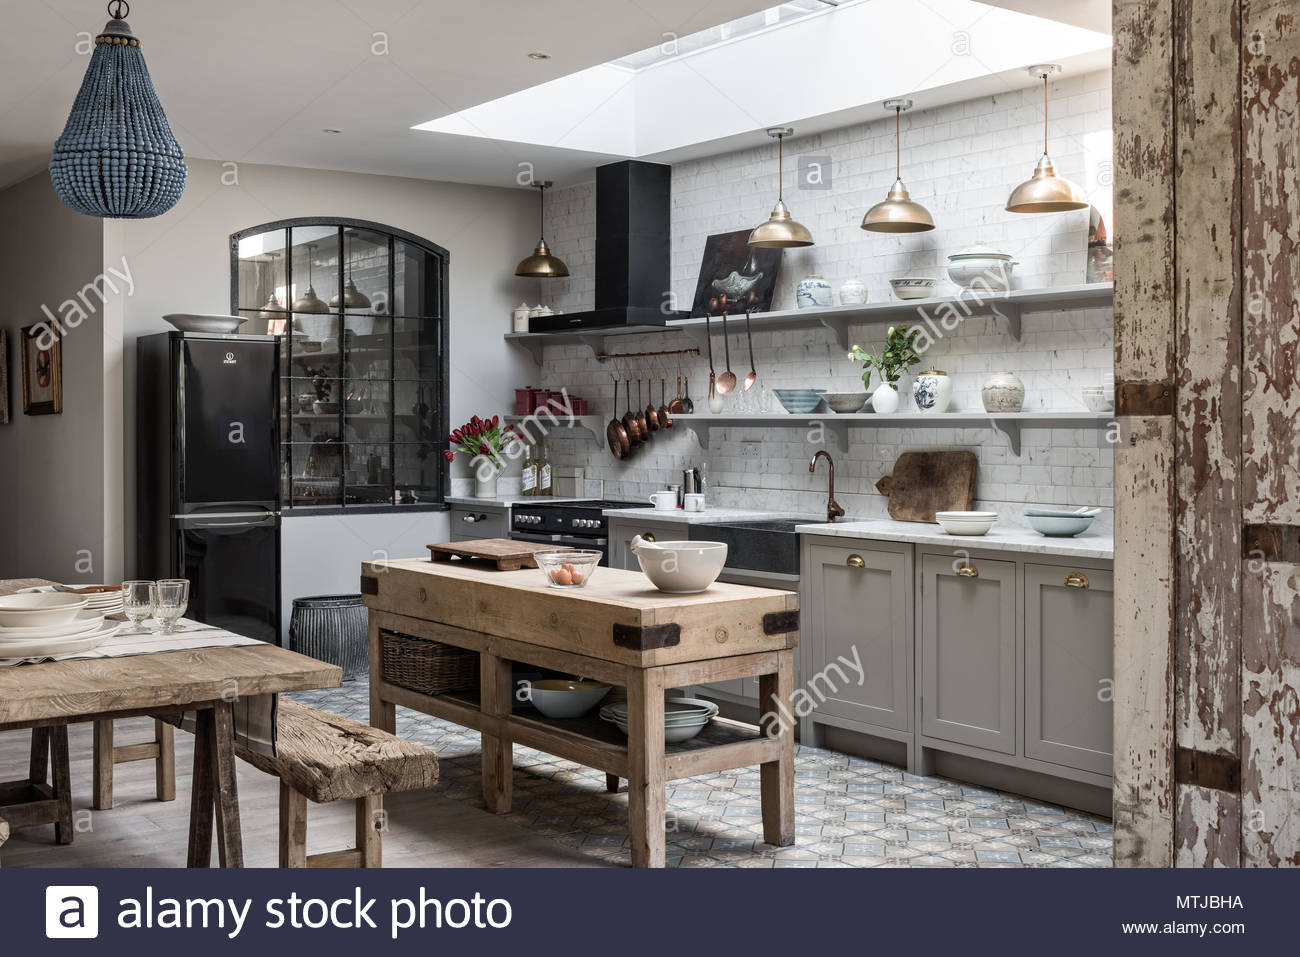 Open Plan Sophisticaed Kitchen With Vintage Brass Pendant Lighting Rustic Wooden Butchers Island And Beaded Chandelier From Graham Green